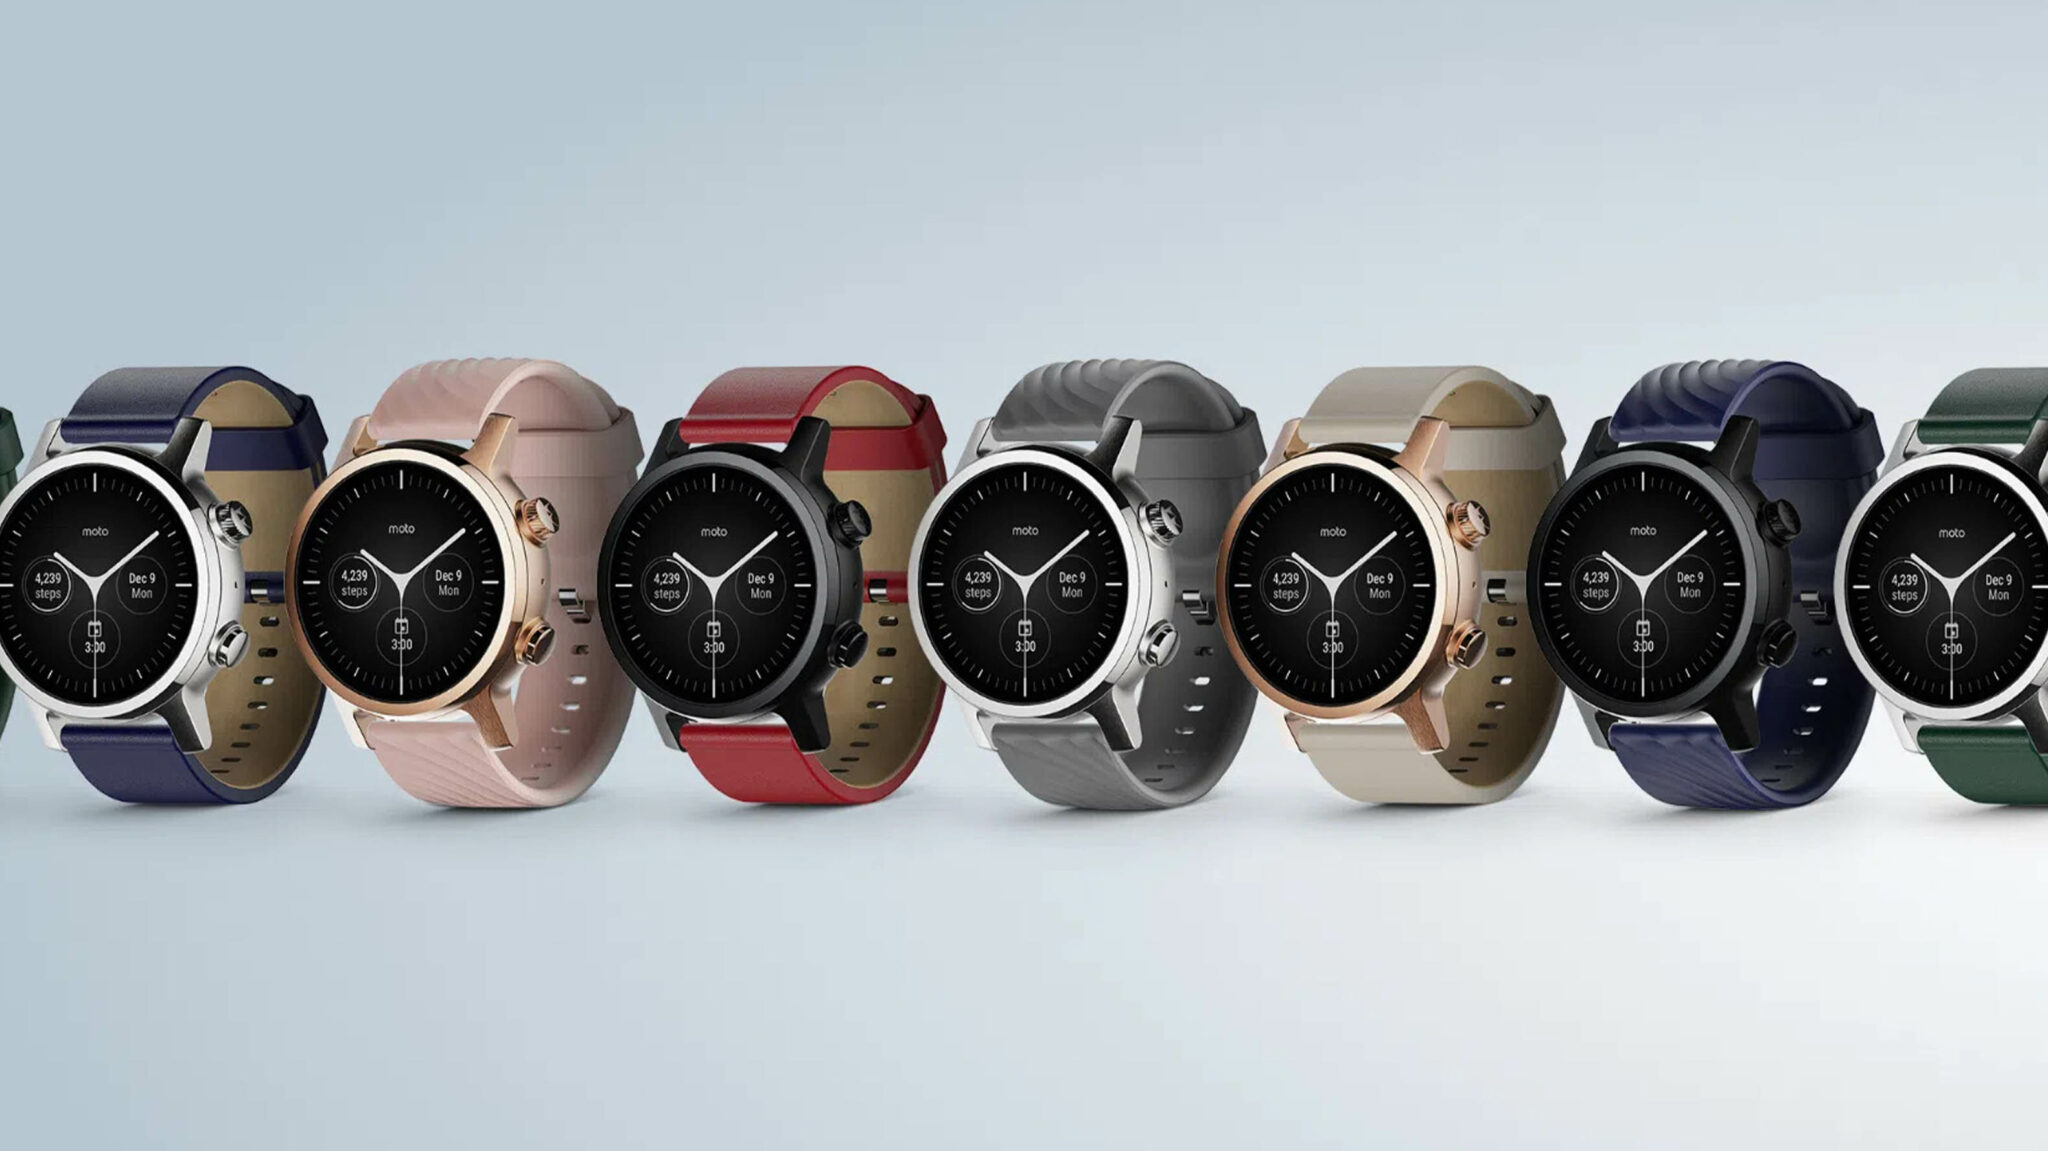 Moto G, Watch and One smartwatches could launch this summer